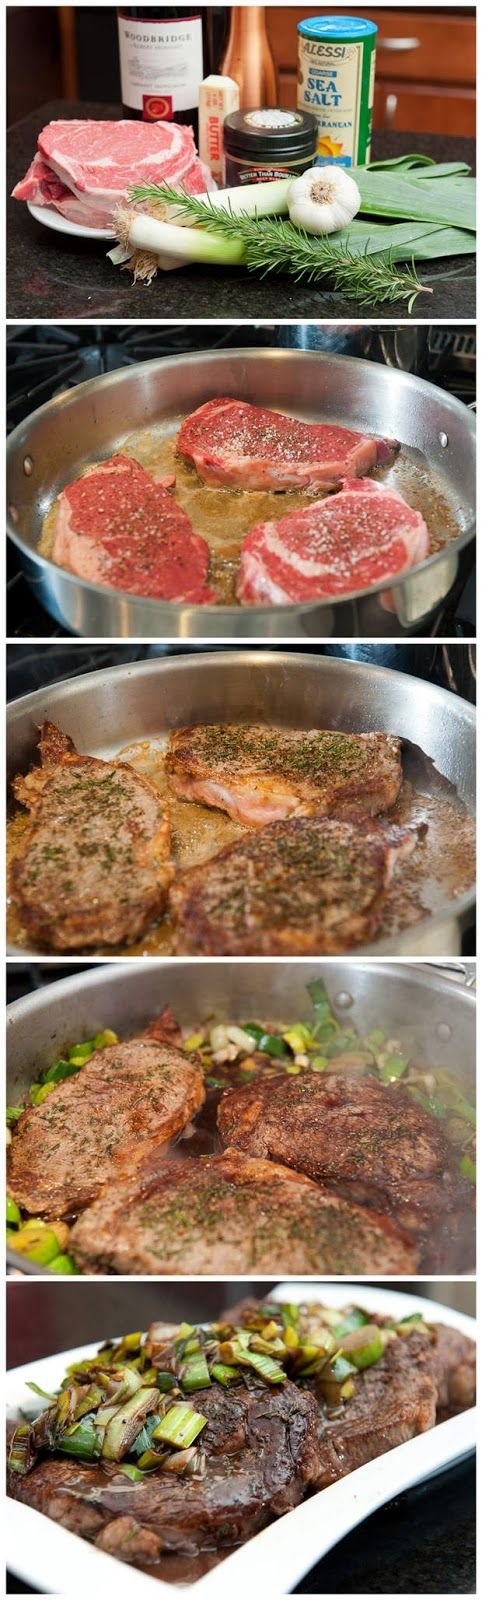 Steak with Leeks and Red Wine Butter Sauce